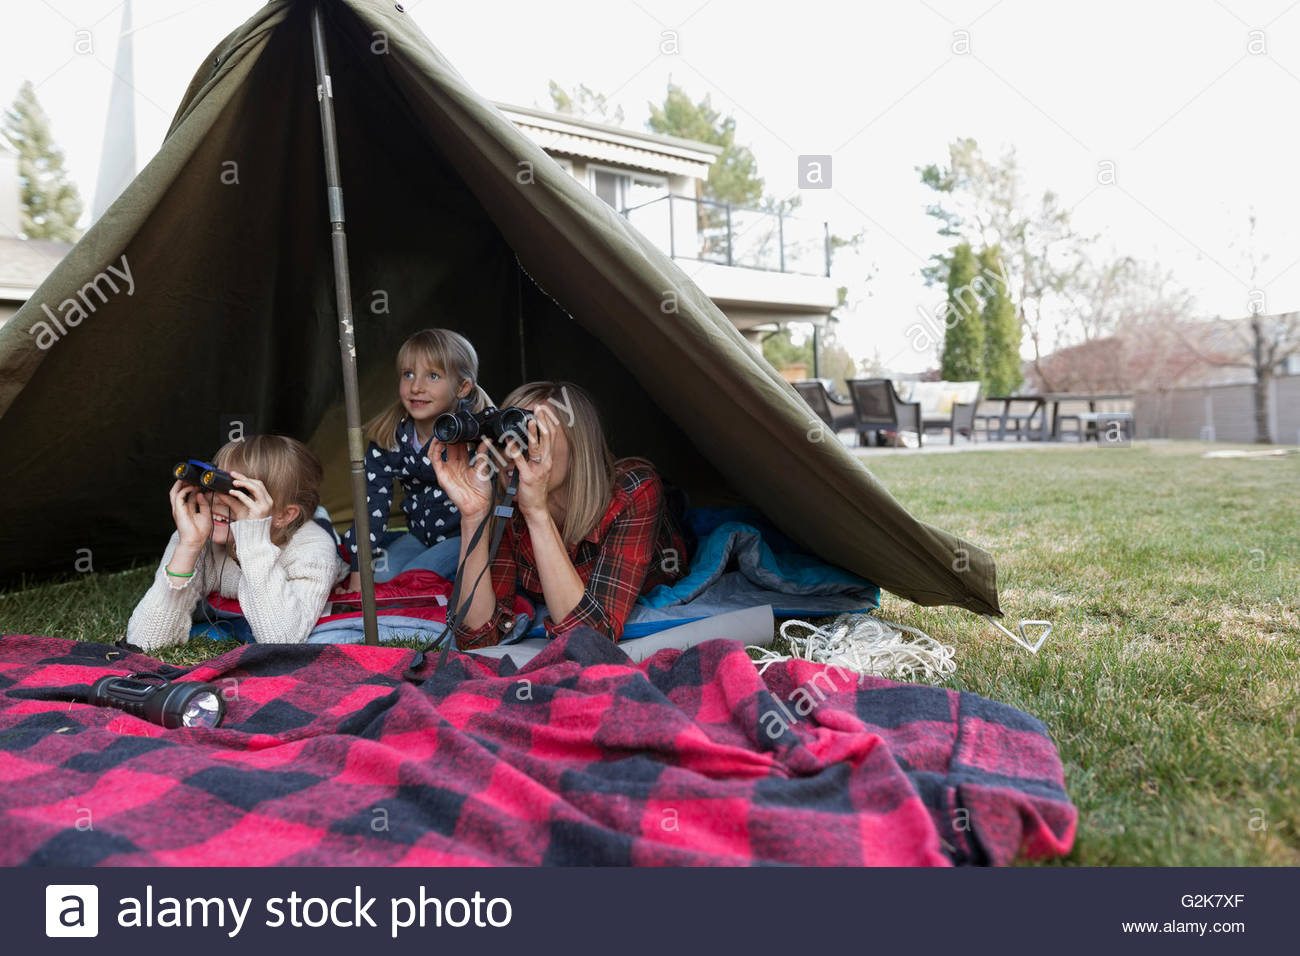 Mother and daughters using binoculars in backyard tent - Stock Image